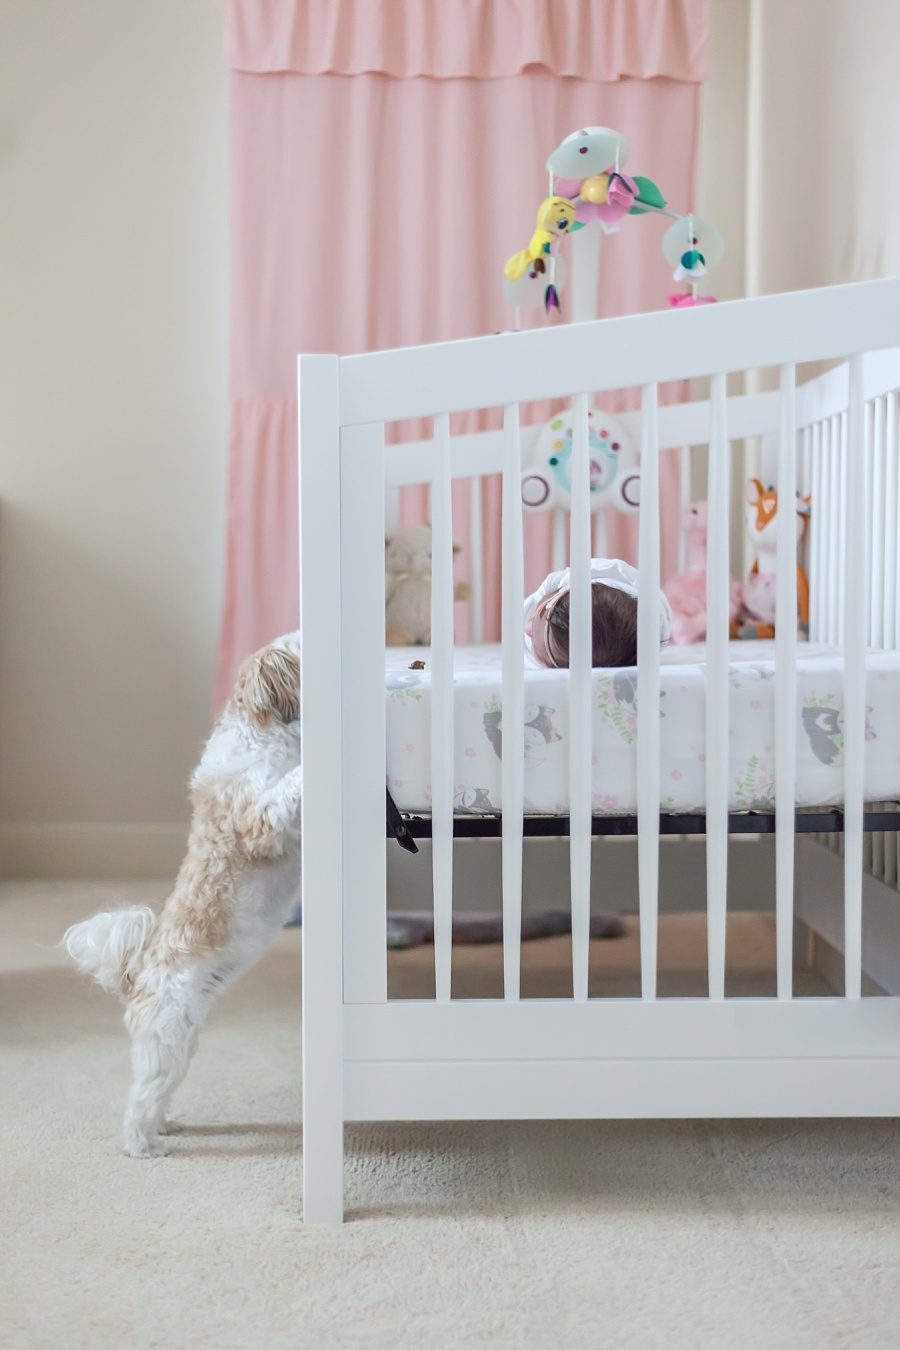 in-home newborn session in the woodlands texas with newborn and puppy